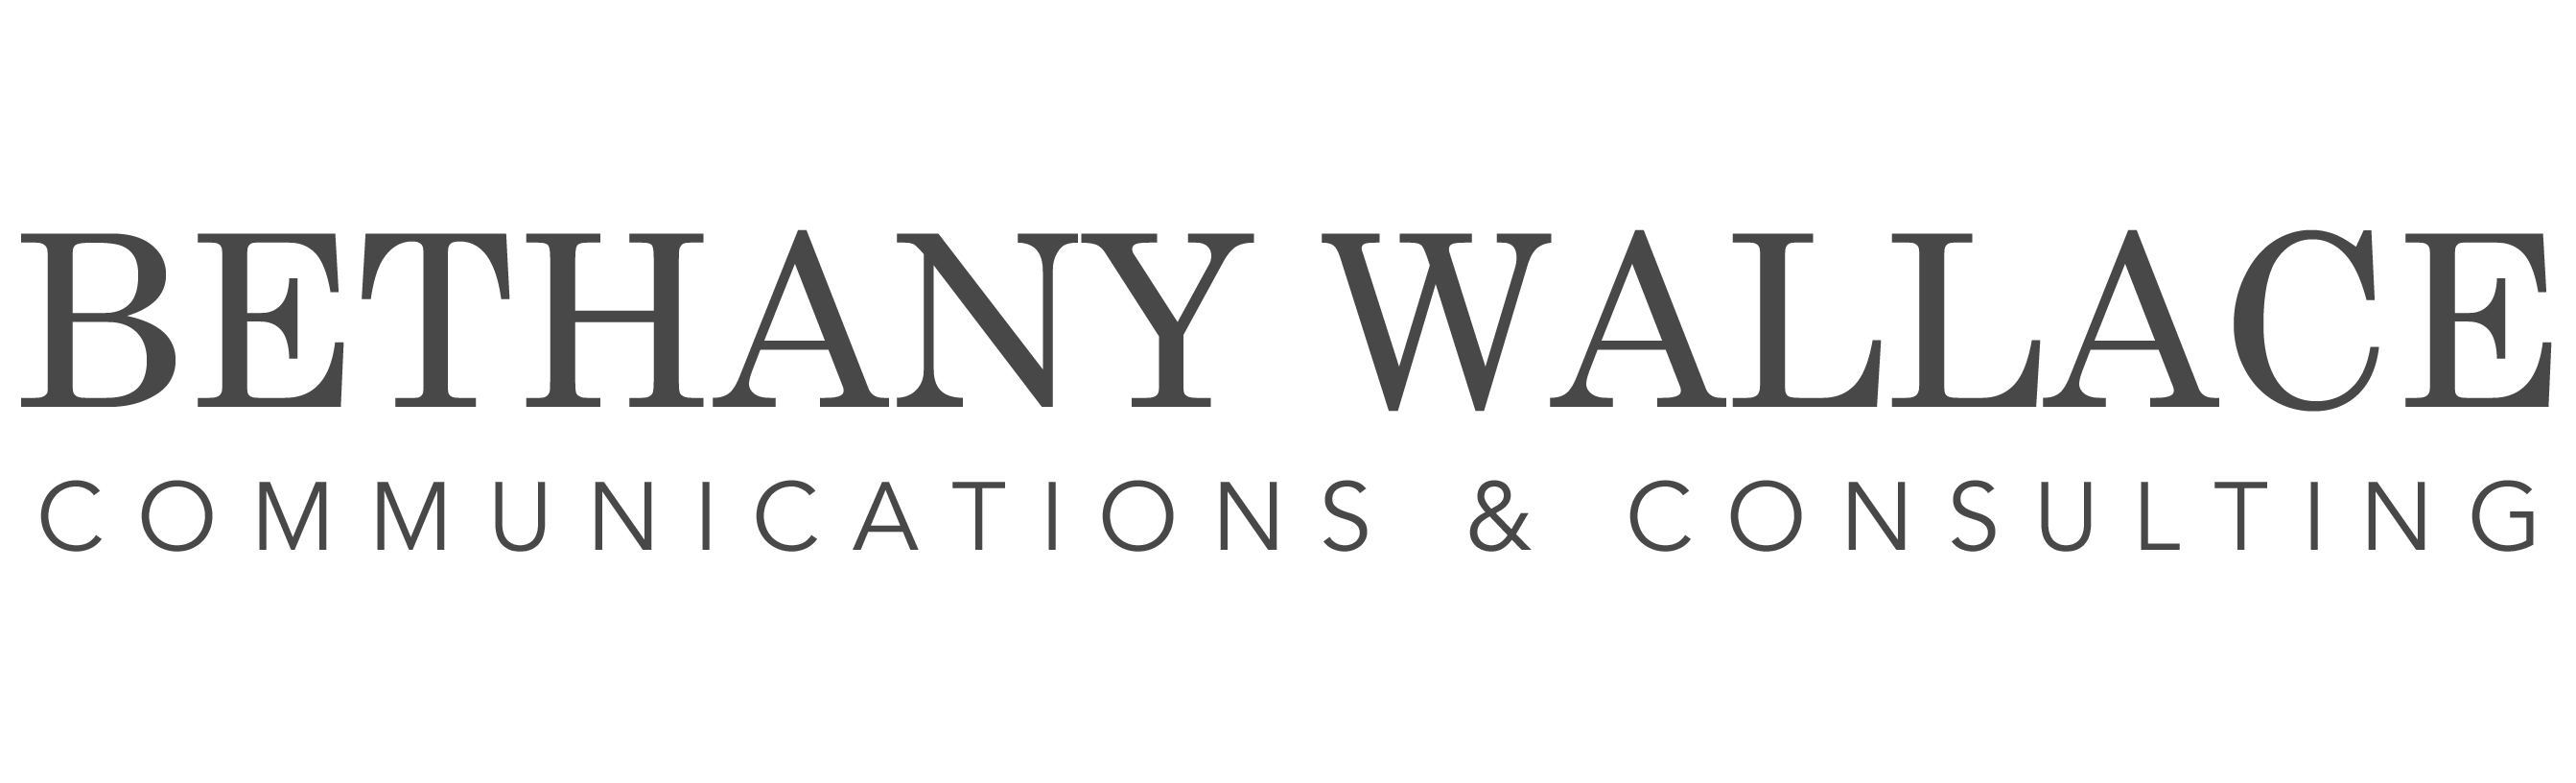 Bethany Wallace Communications & Consulting